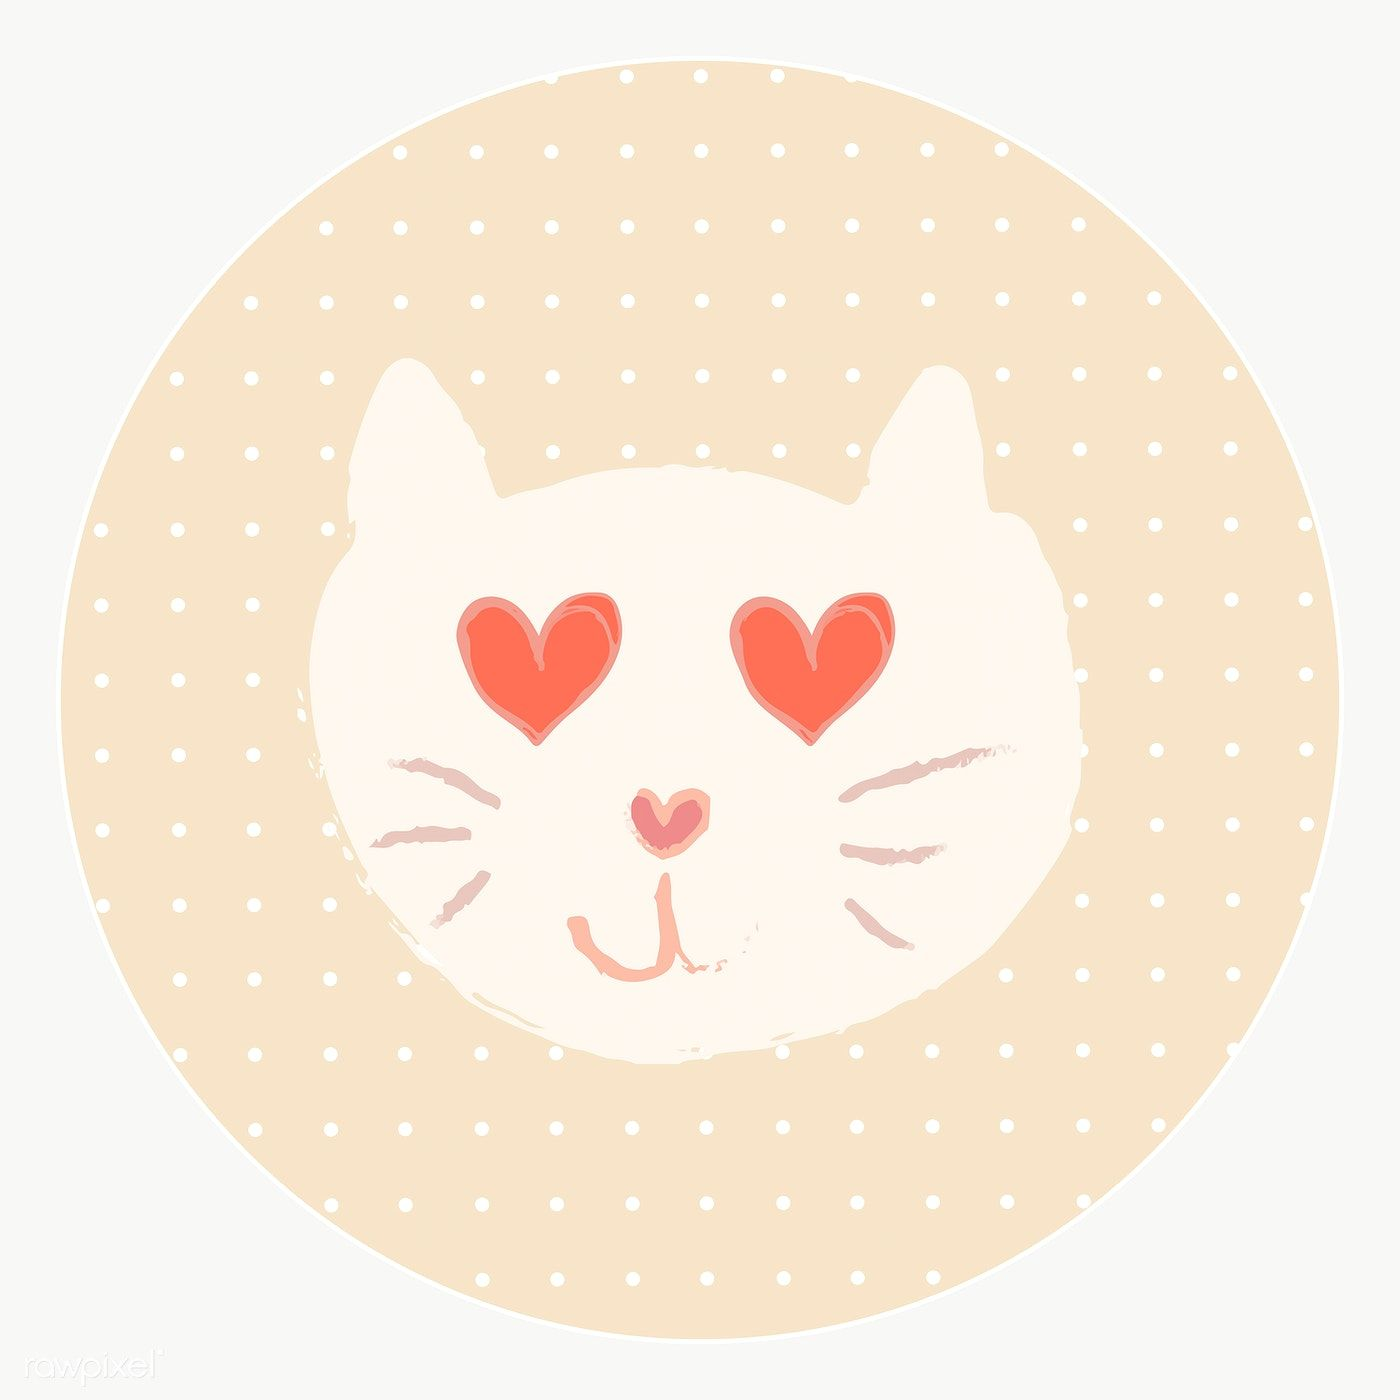 Cute Cat Story Highlights Icon For Social Media Transparent Png Free Image By Rawpixel Com Mind In 2020 Cute Cat Cat Doodle Arts Crafts Supplies